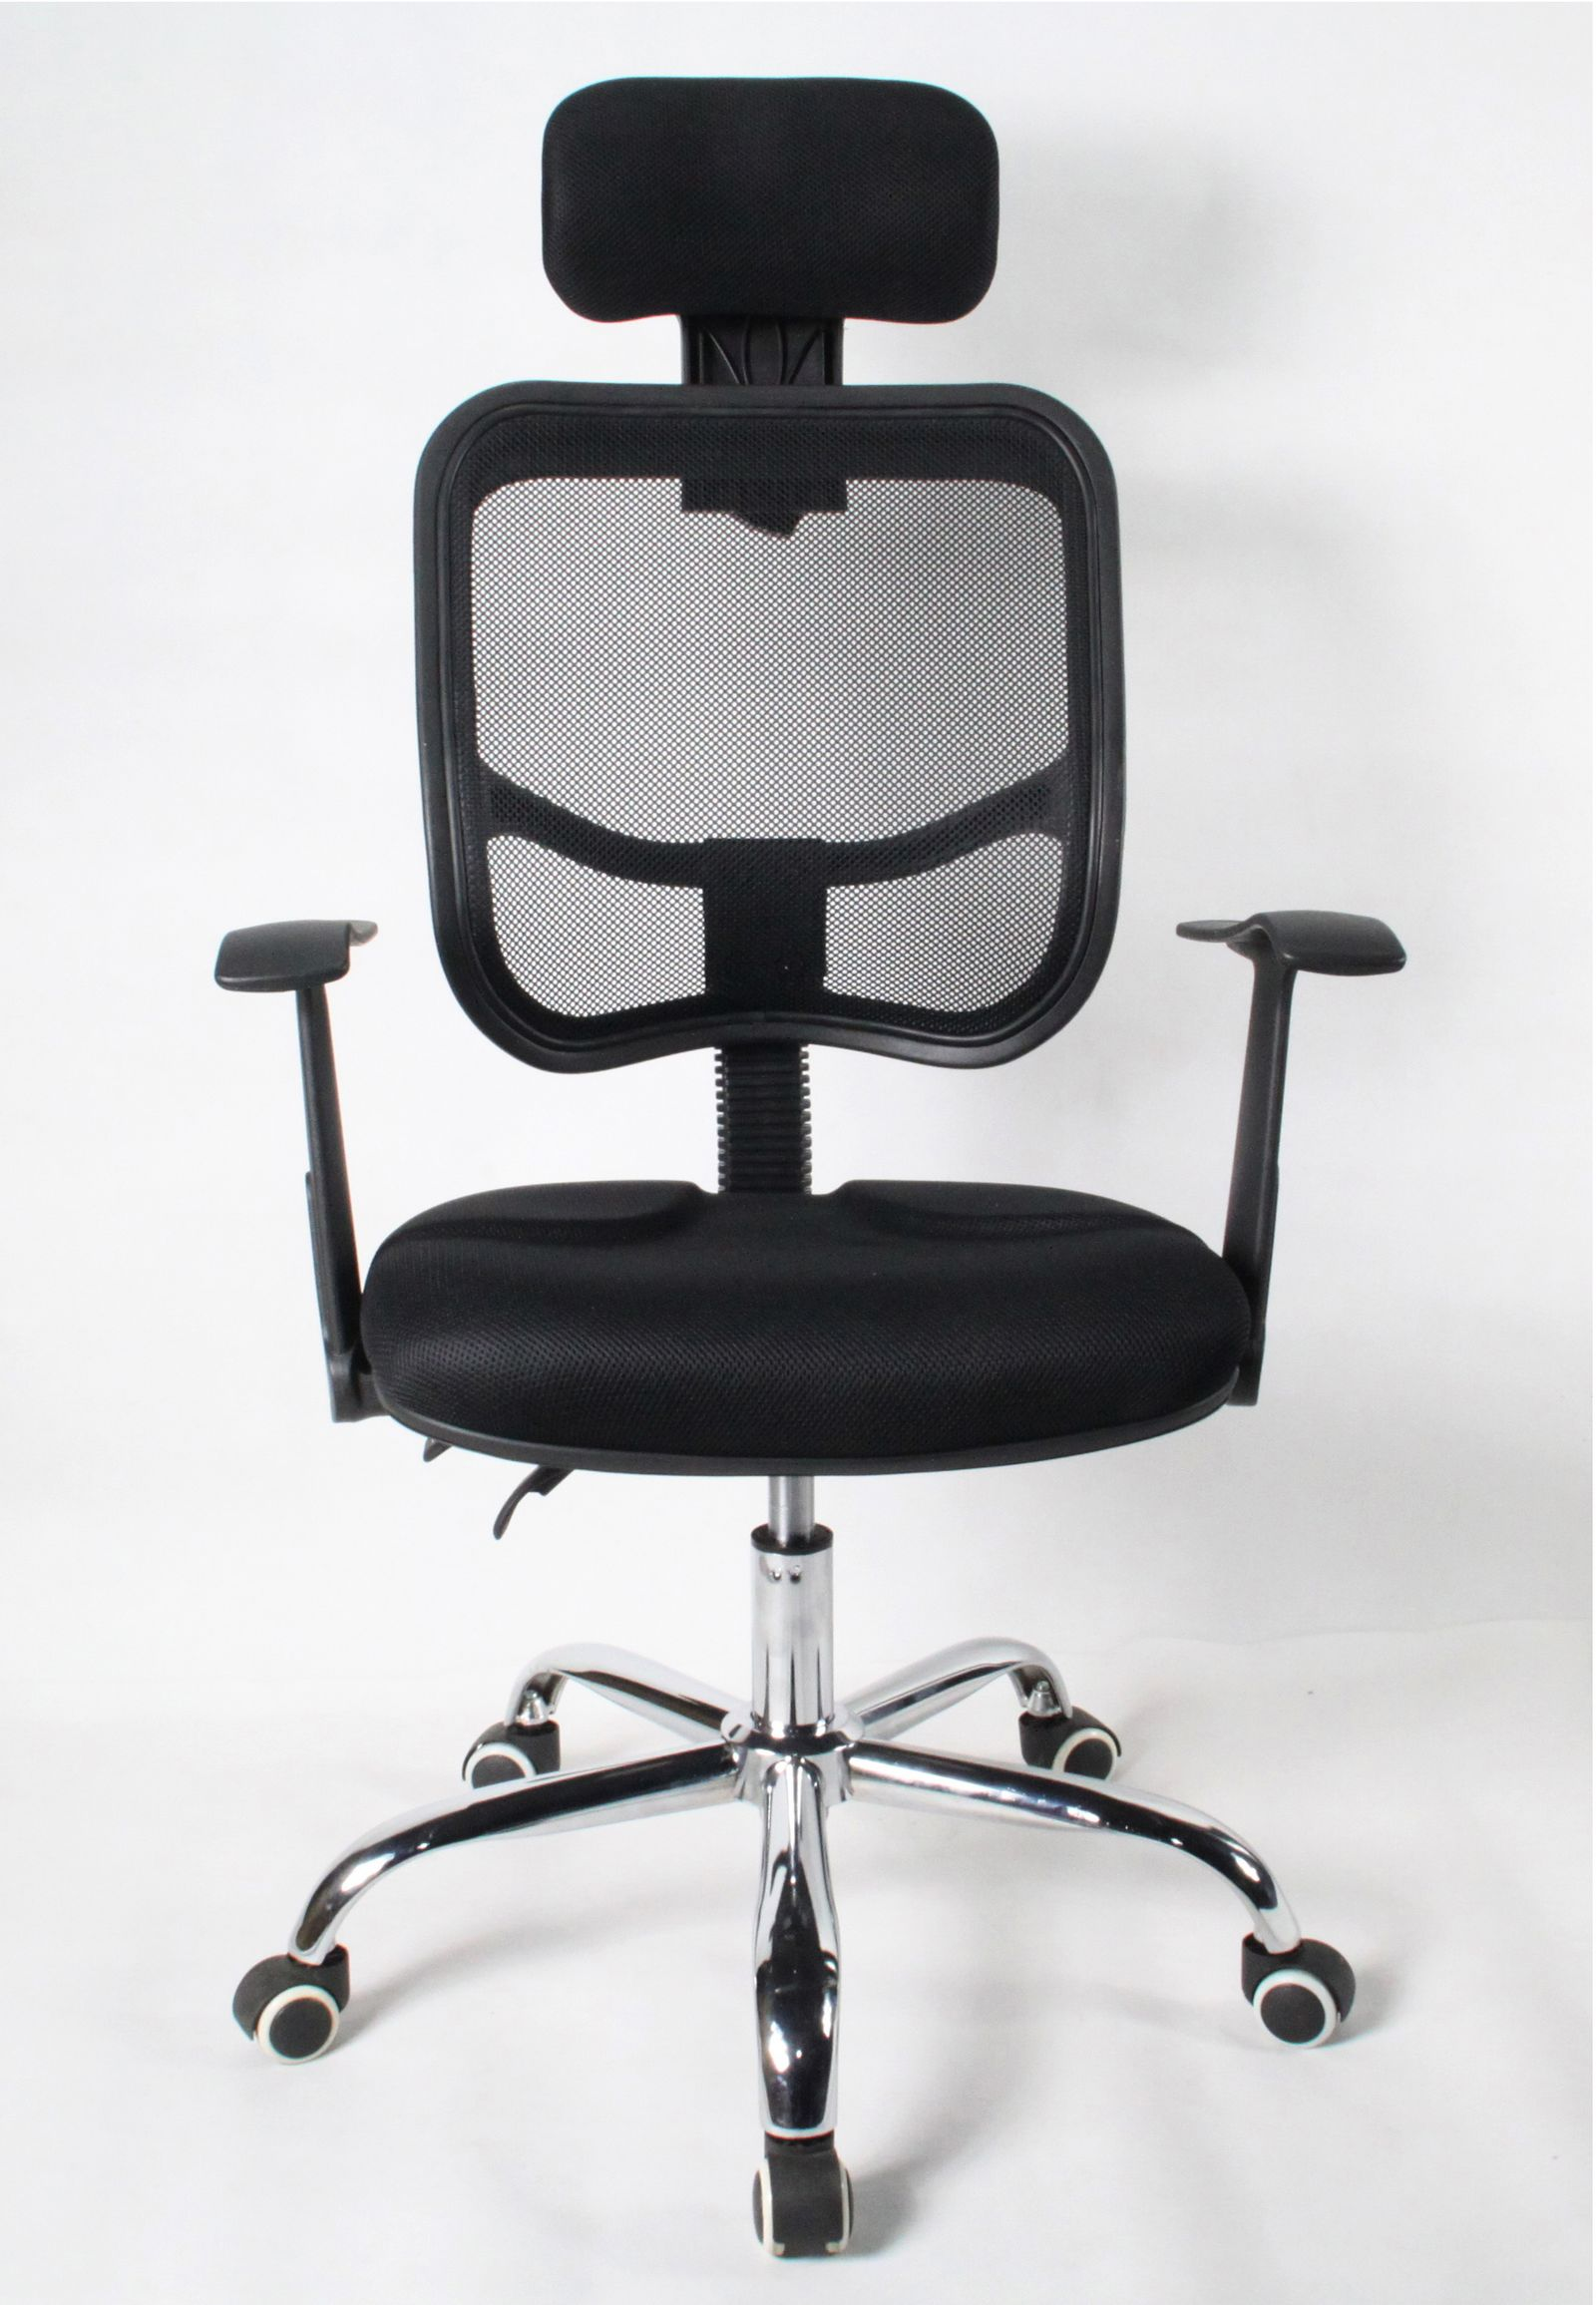 Designer Adjustable Reclining Executive Office Computer Mesh Chrome Chair Bla